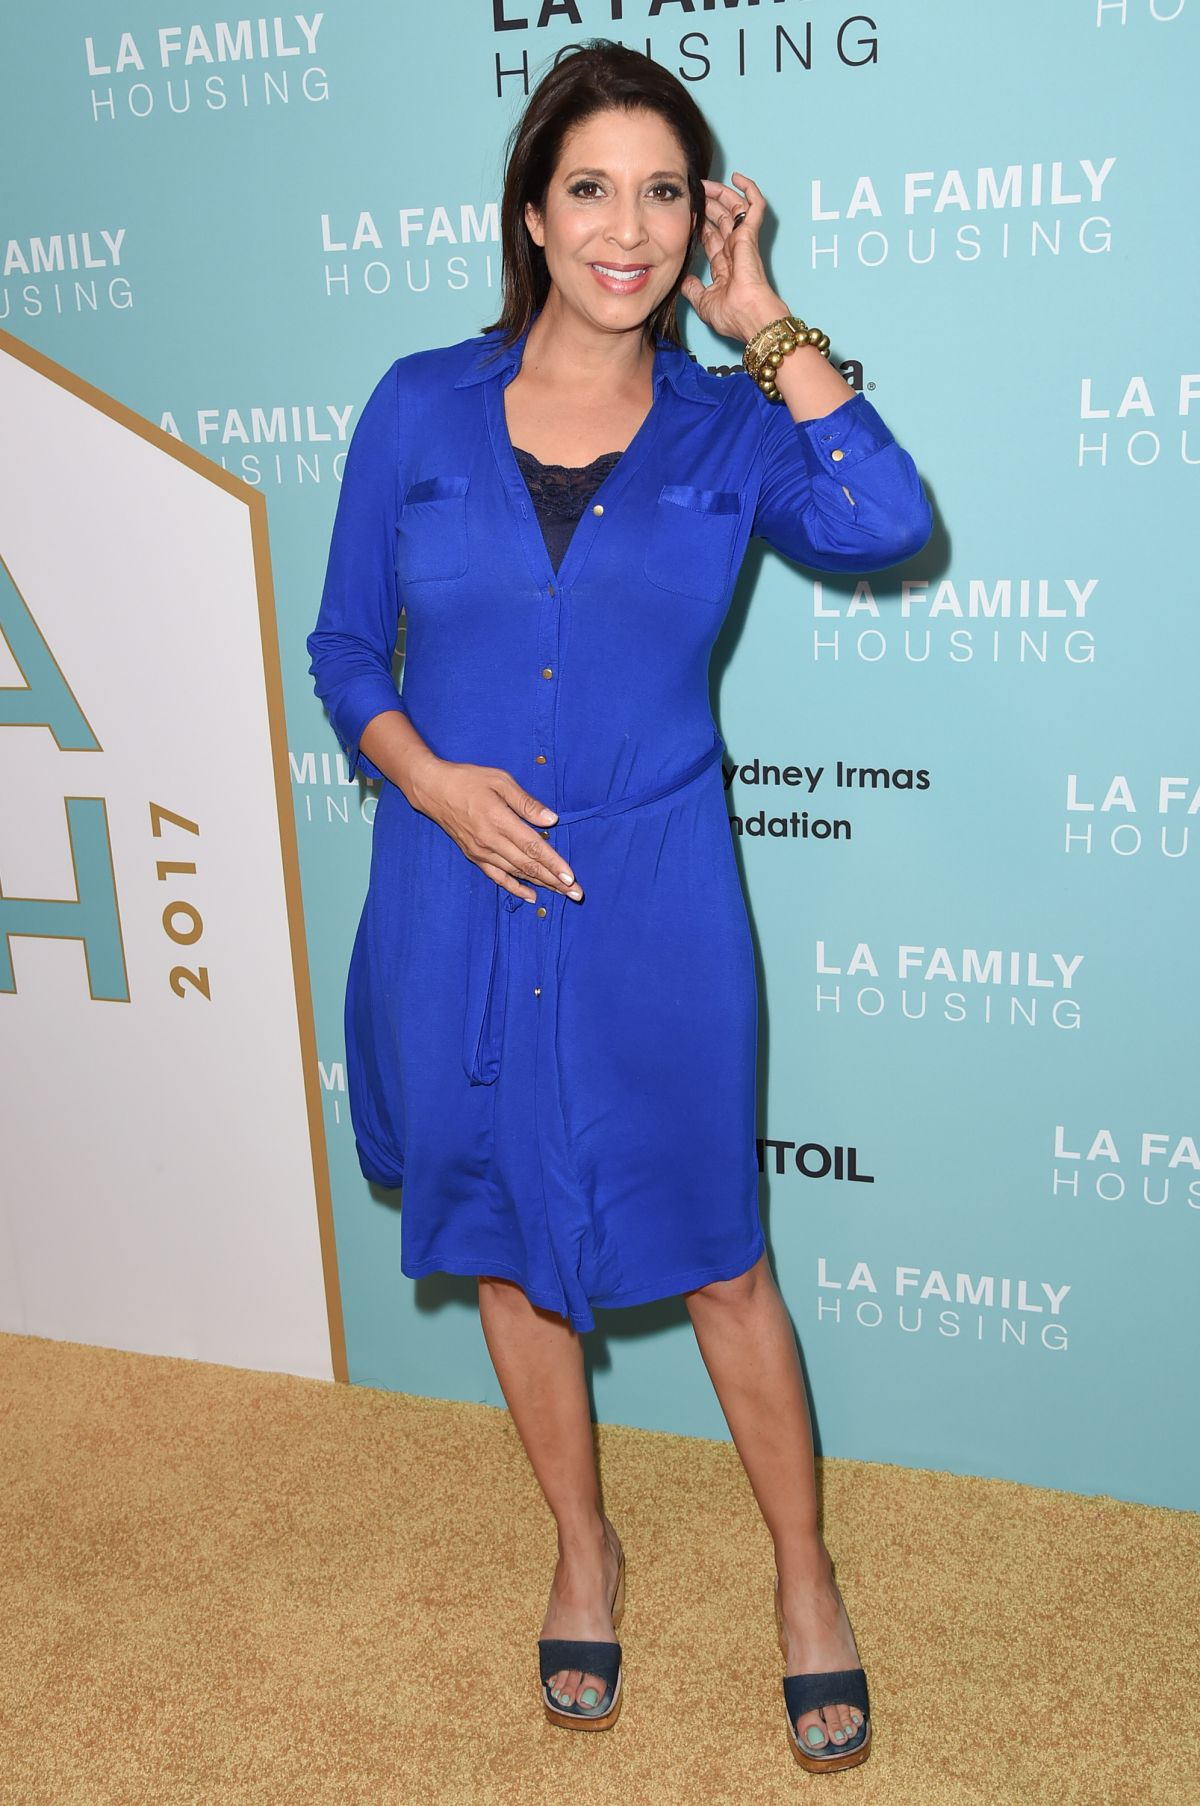 CHRISTINE DEVINE at LA Family Housing Awards in Los Angeles 04/27/2017